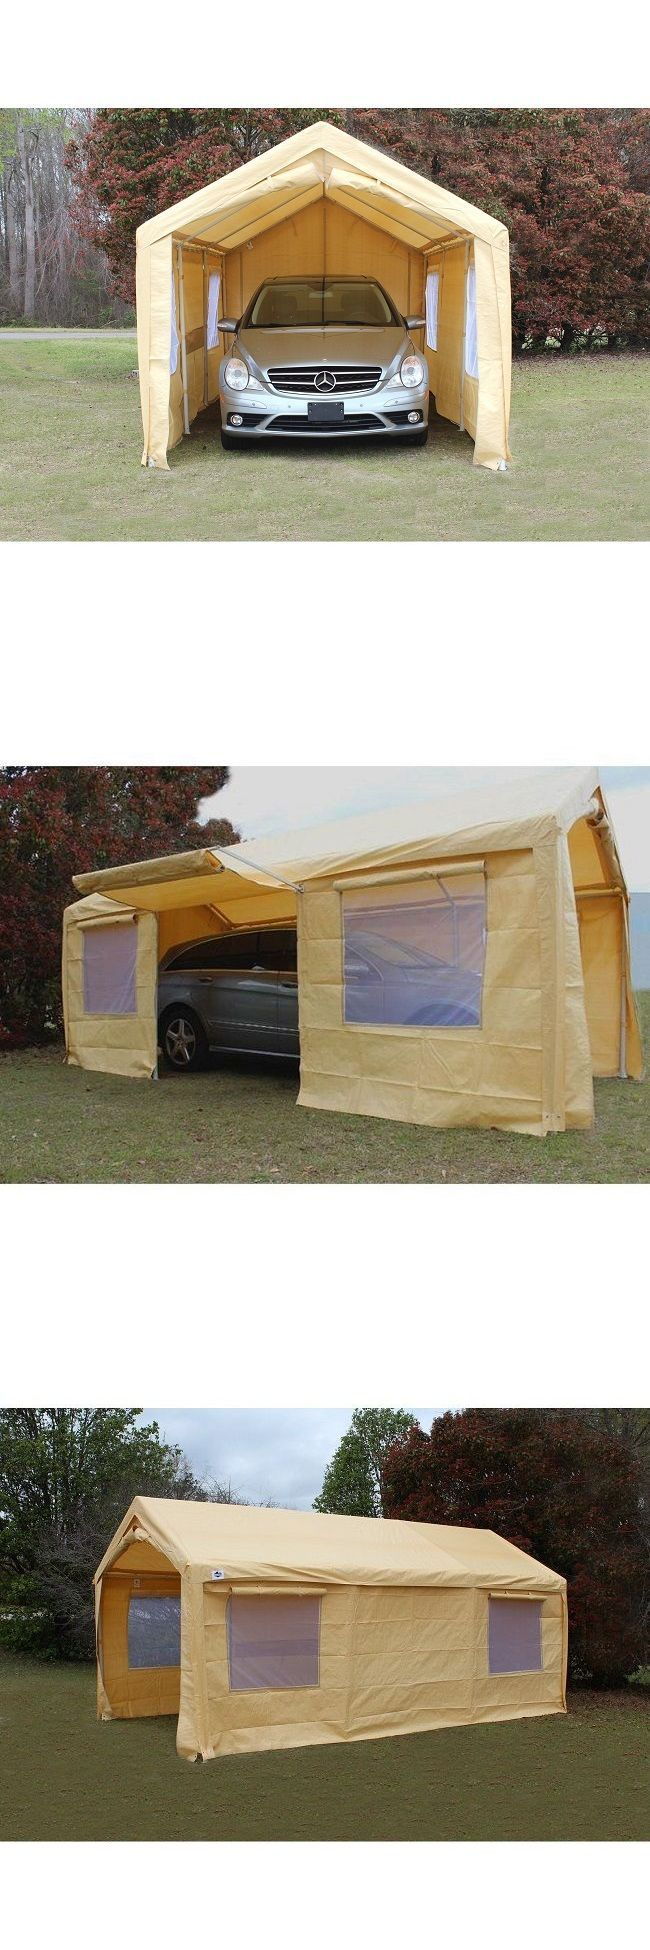 Awnings and Canopies 180992: Carport Tent Canopy Carports 10X20 Portable Frame Steel Enclosed Side Wall Kit -> BUY IT NOW ONLY: $291.35 on eBay!